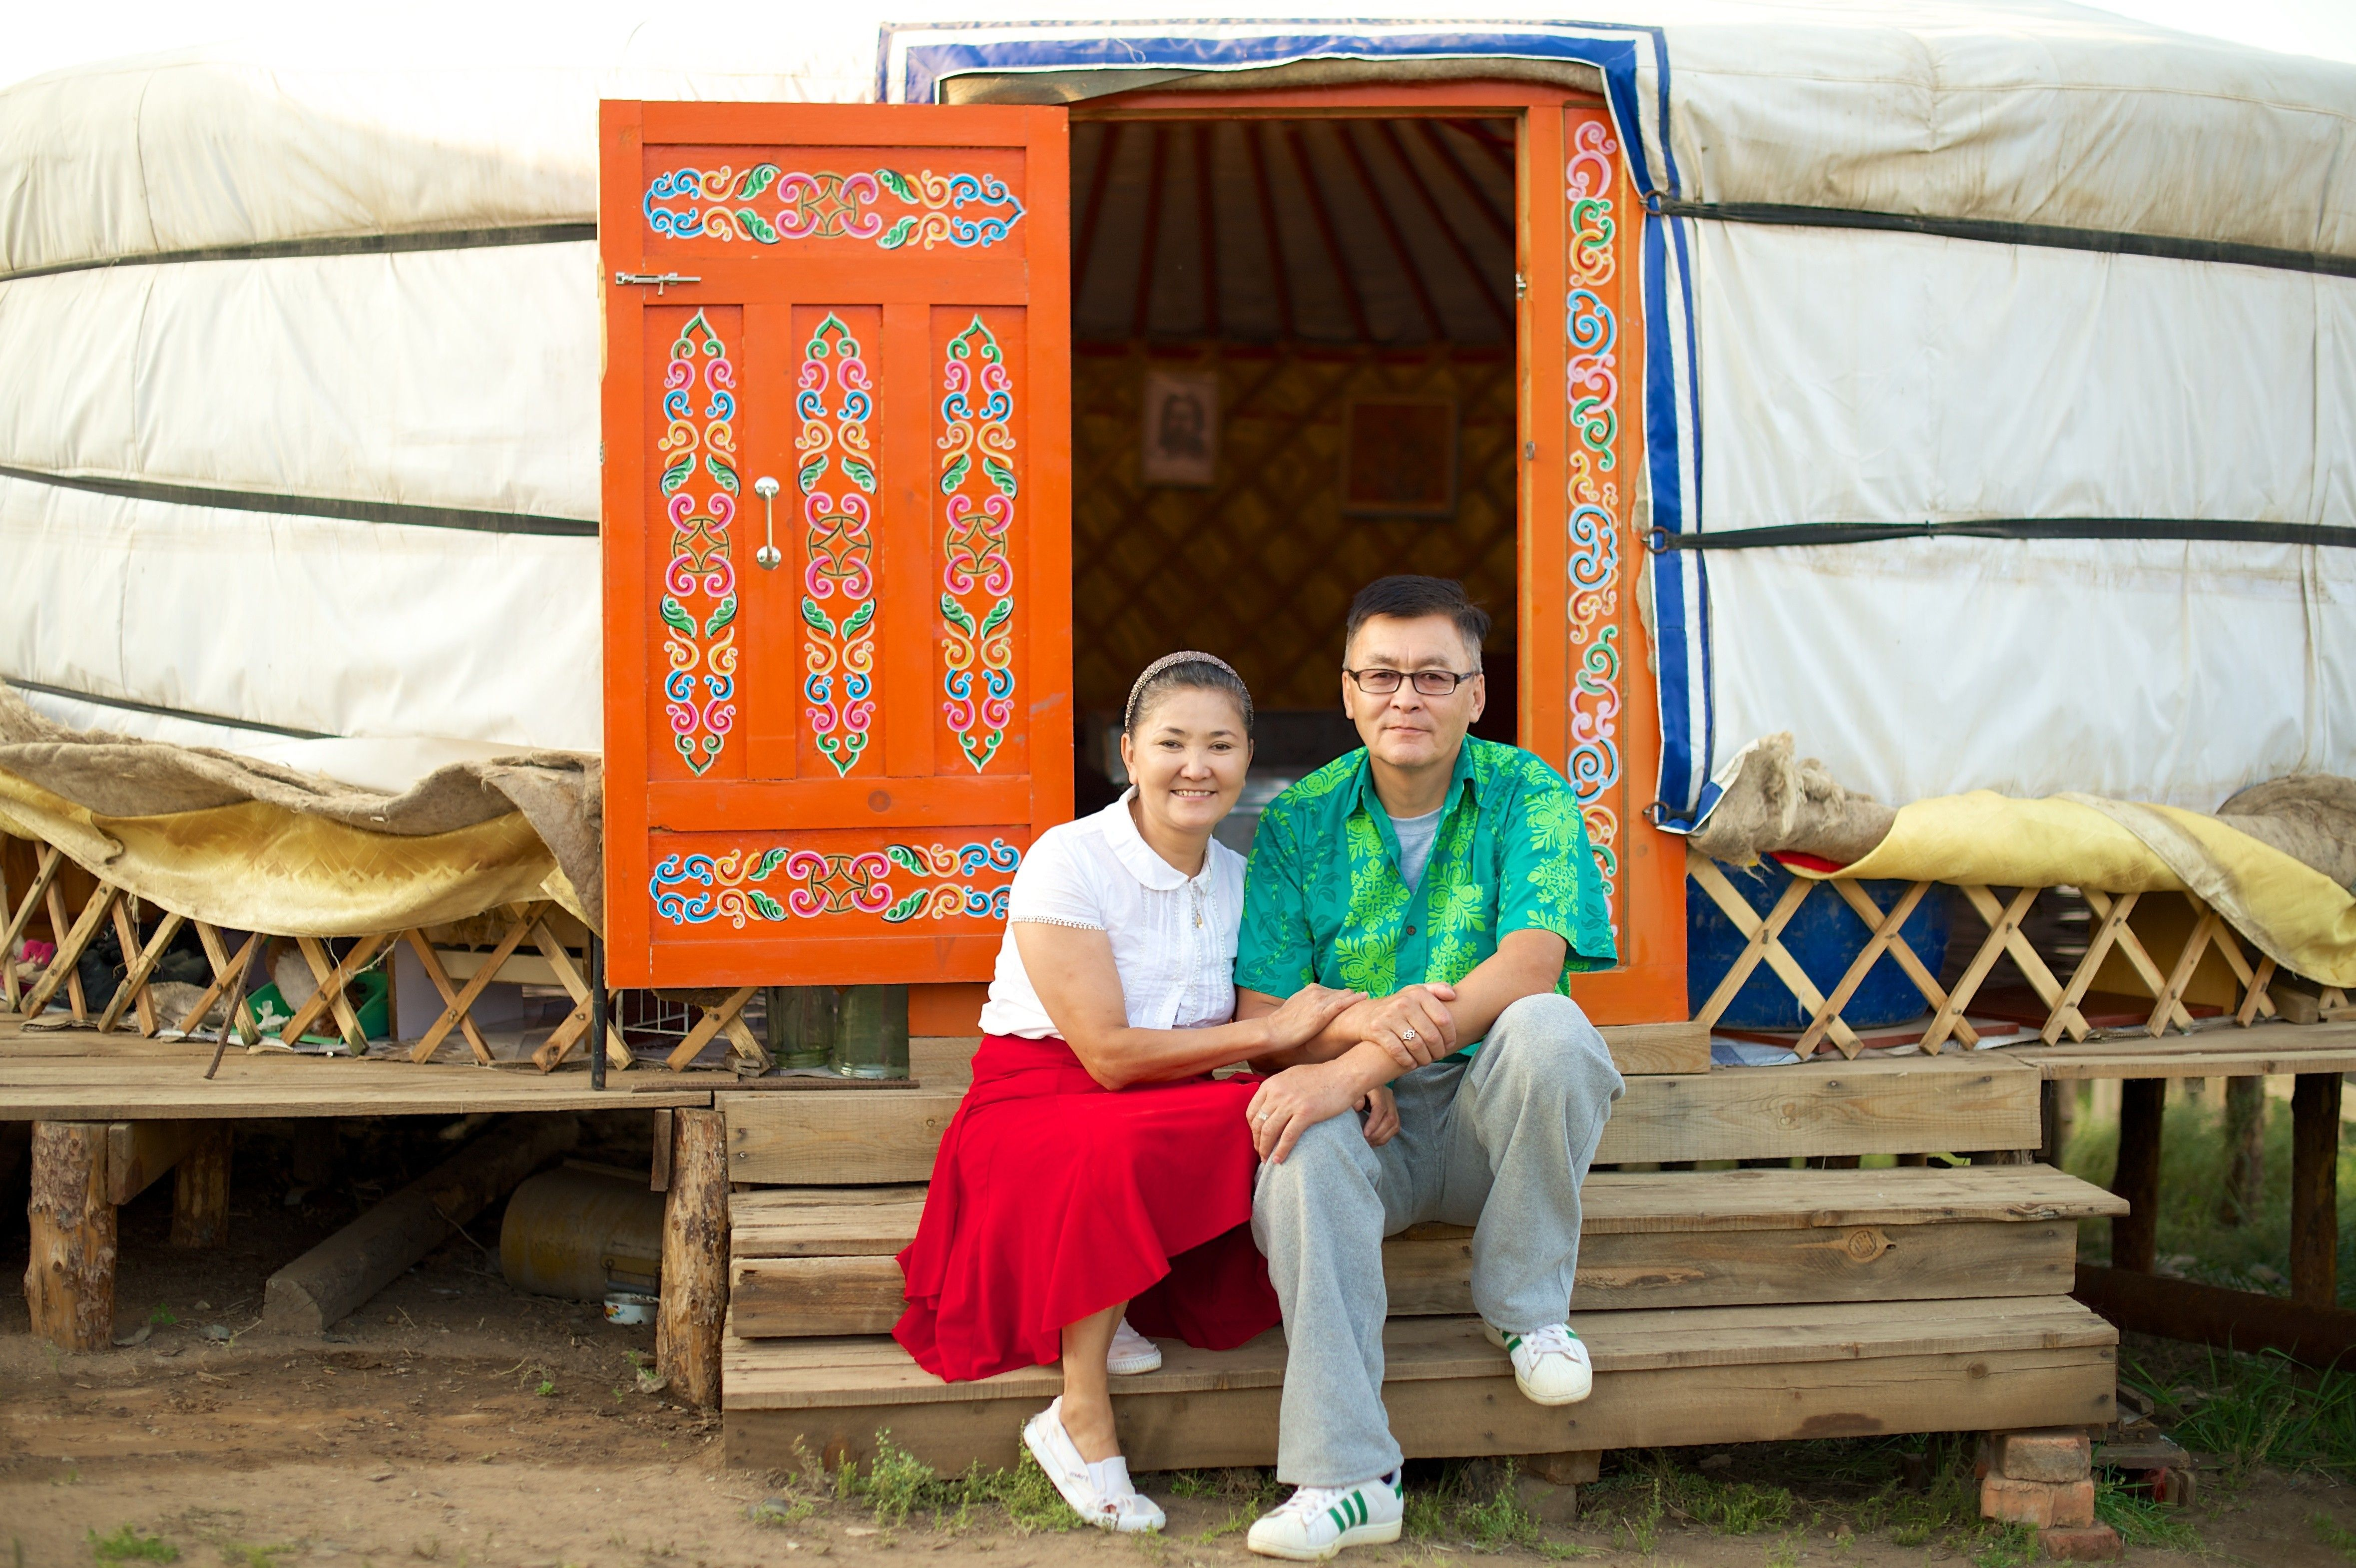 A couple from Mongolia sits on stairs by an orange door that is open.